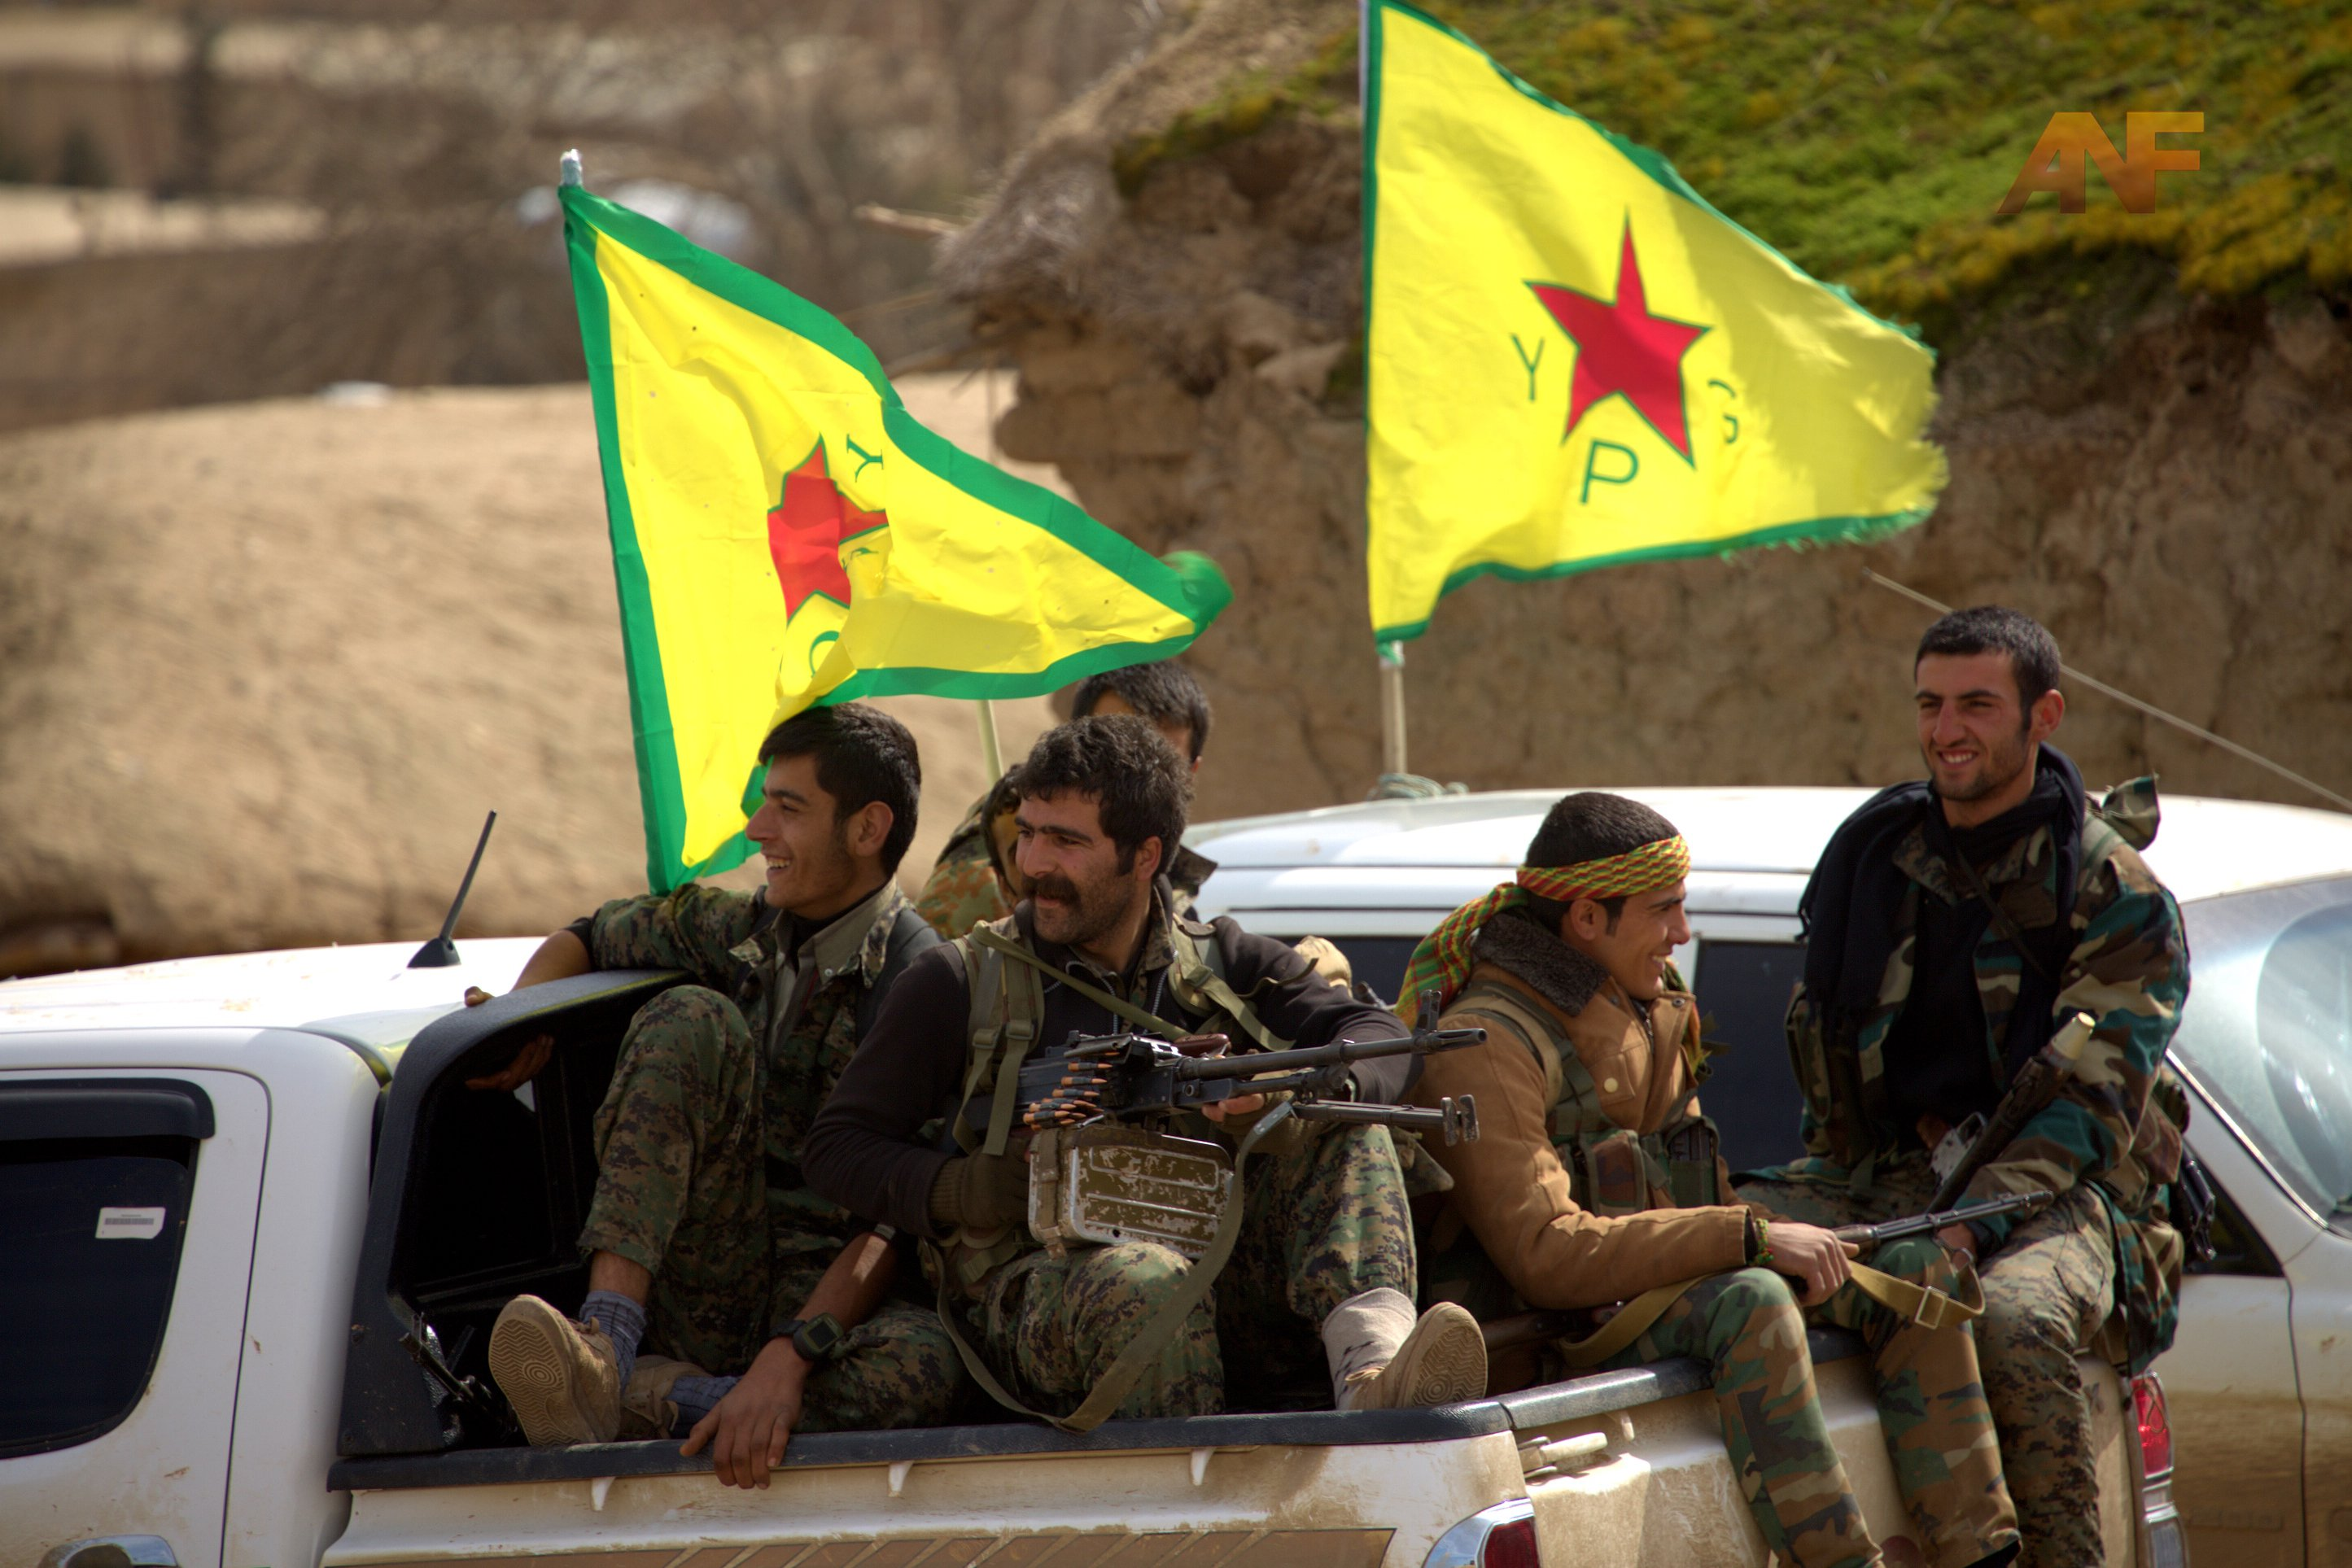 Following US Orders, Kurdish Forces Withdraw from Manbij, Other Areas East of Euphrates River